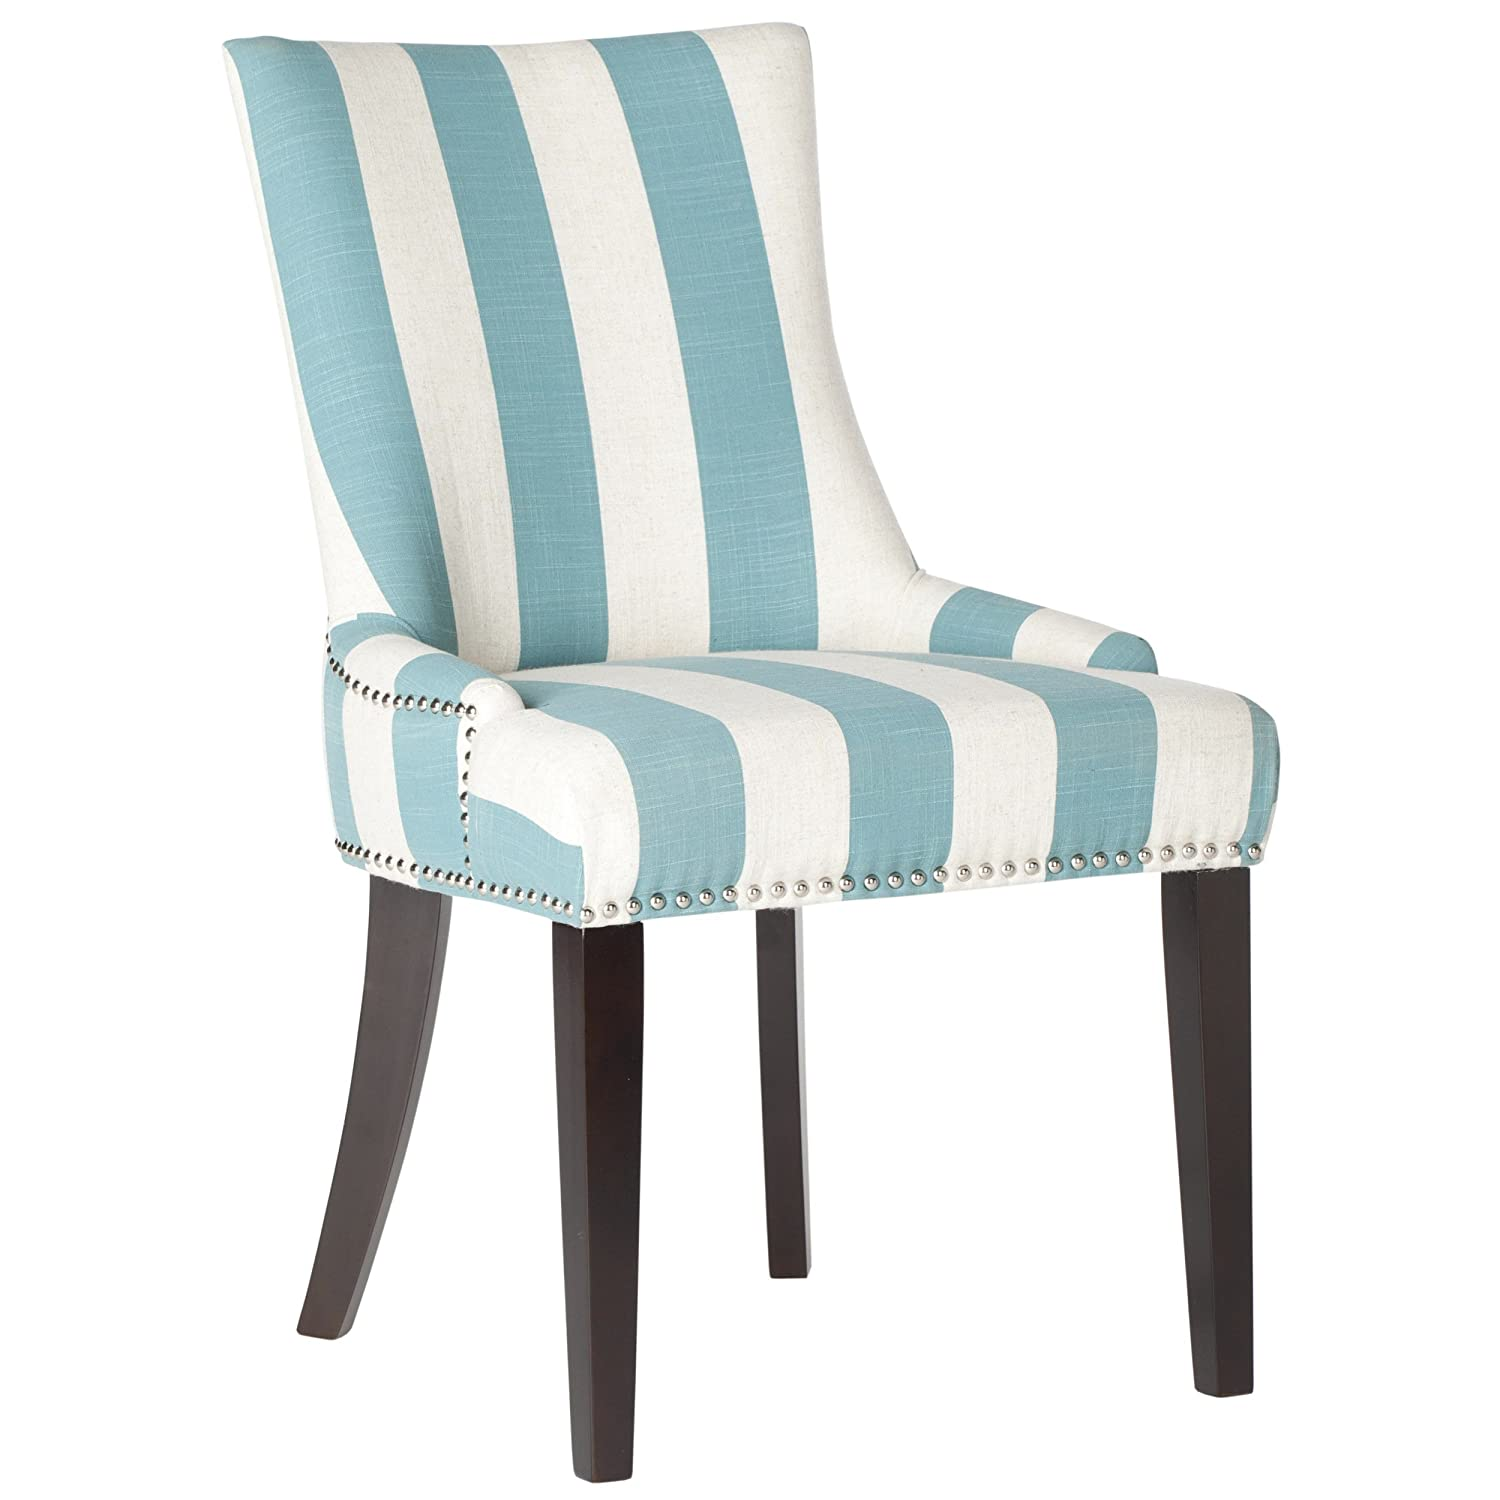 Amazon.com   Safavieh Mercer Collection Lester Dining Chair, Aqua Blue And  White Stripe, Set Of 2   Chairs